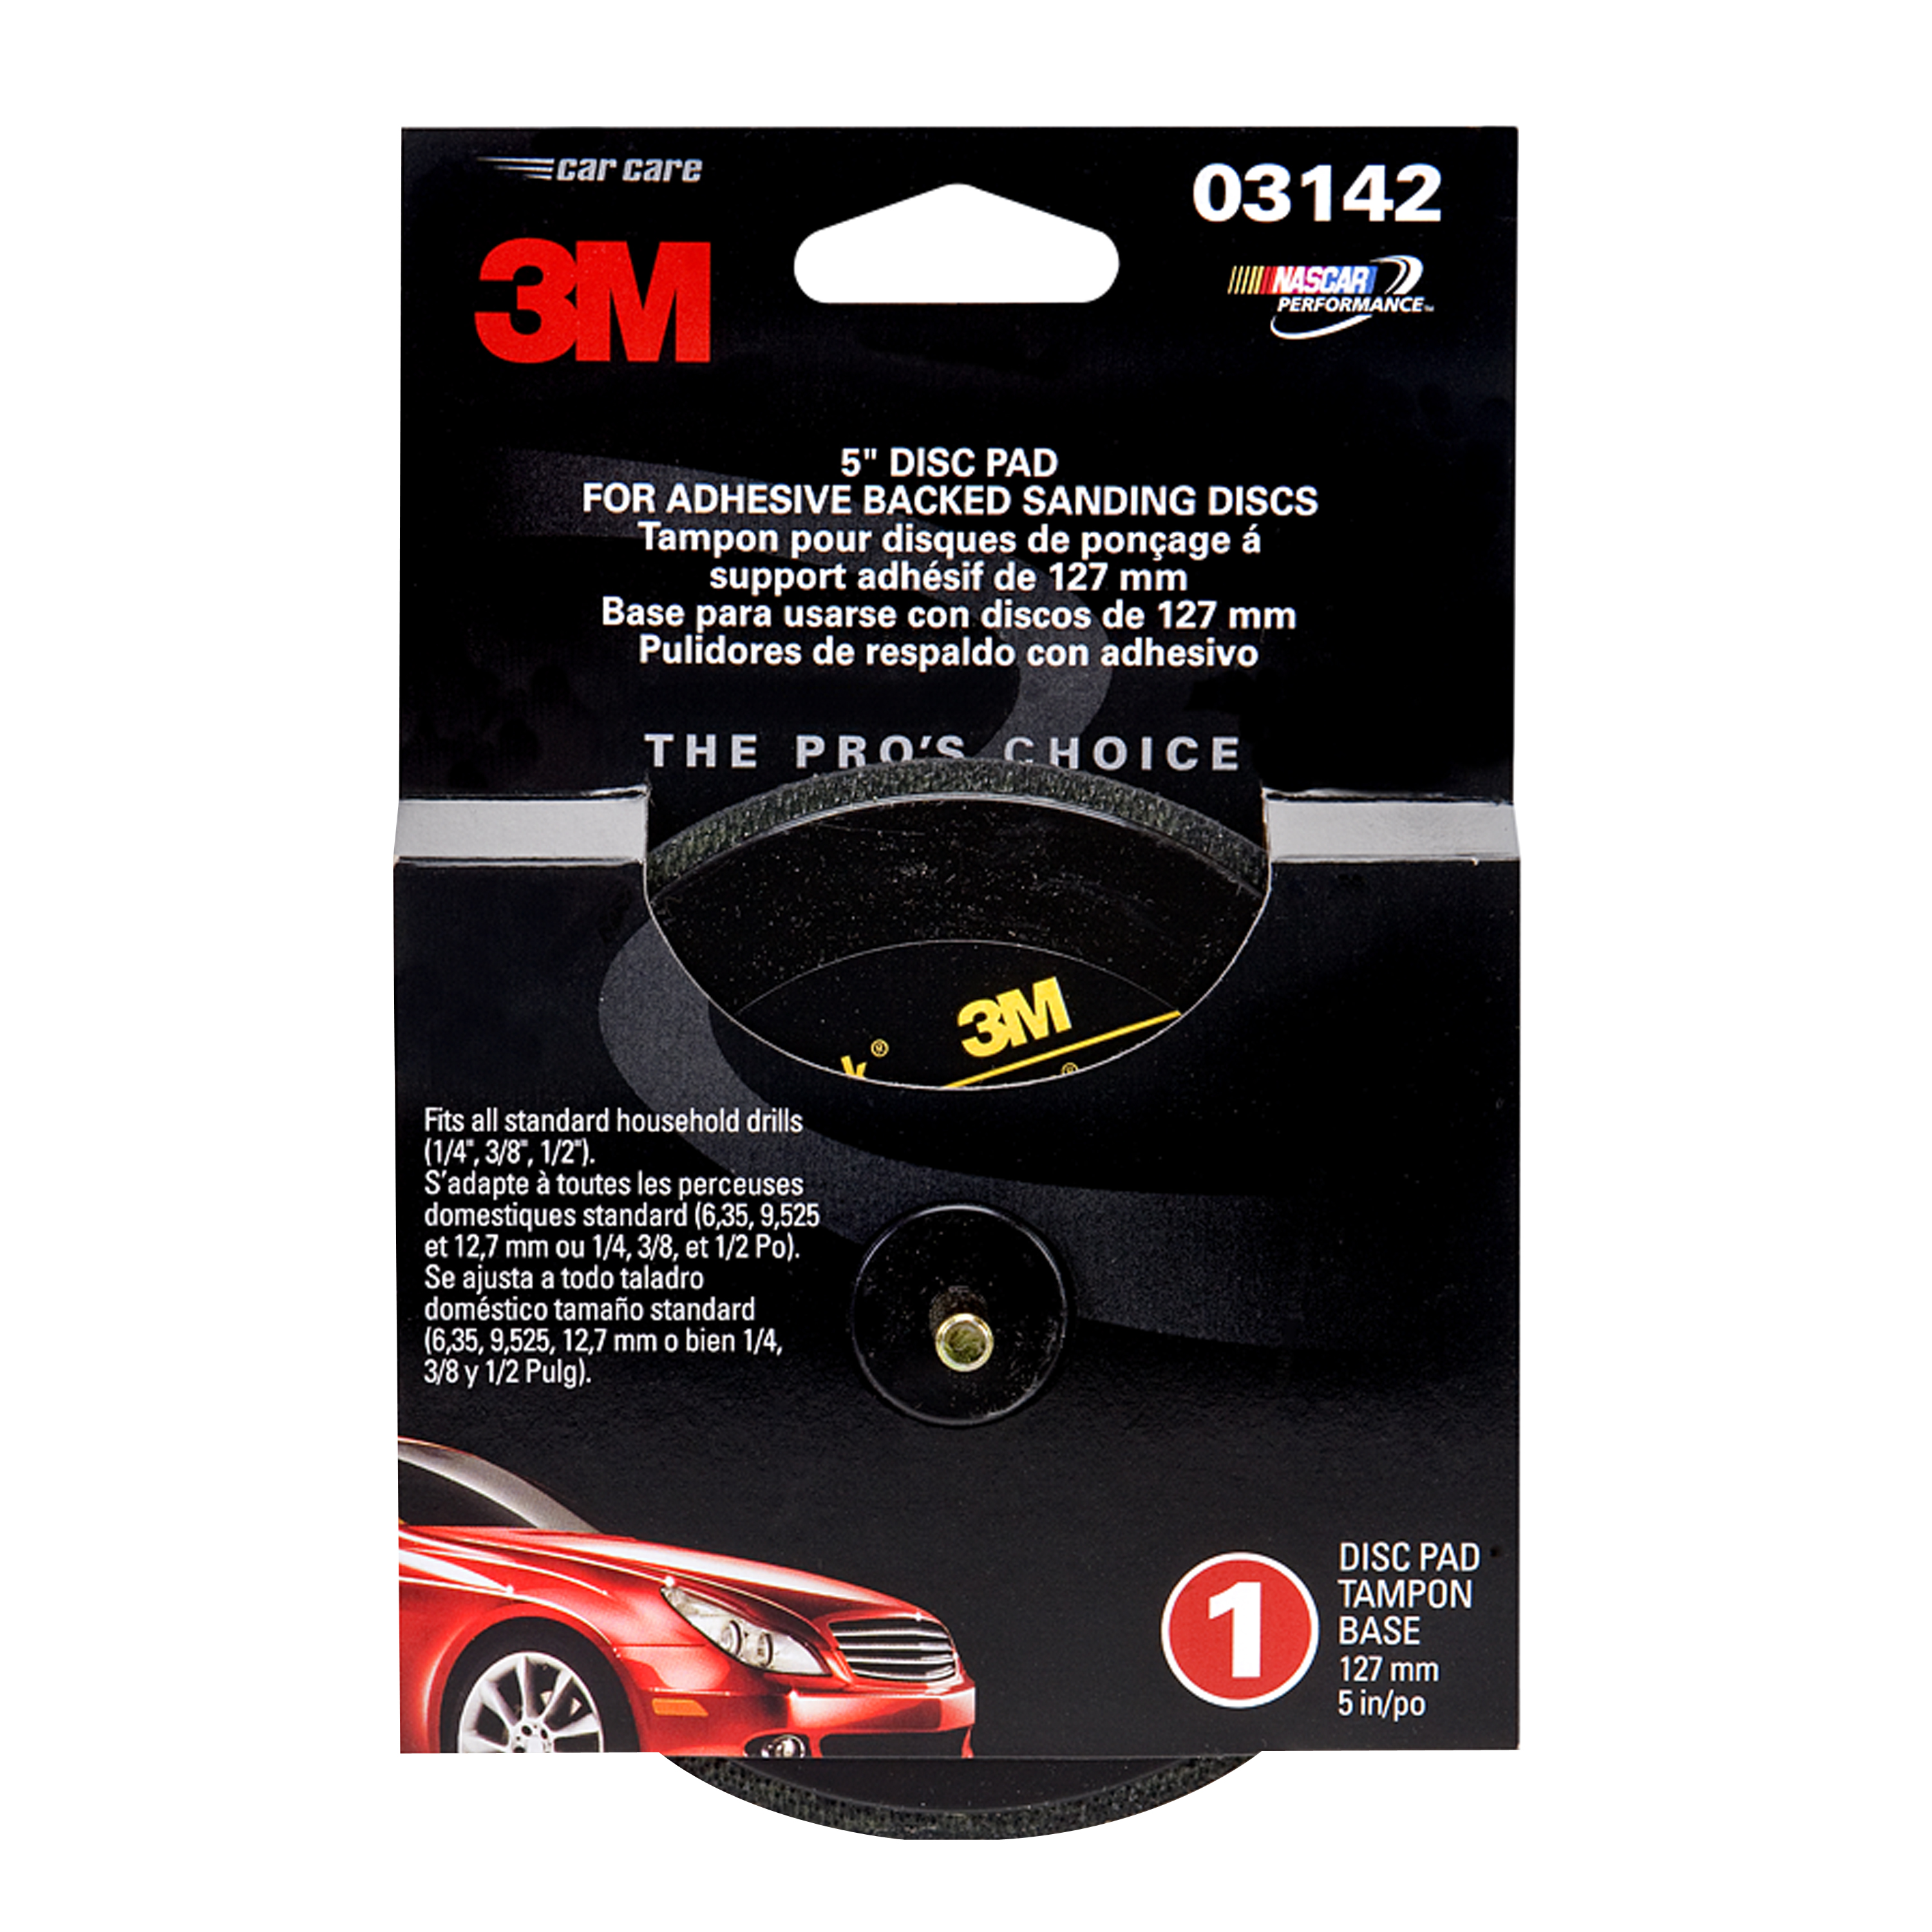 3M Adhesive Backed Disc Pad